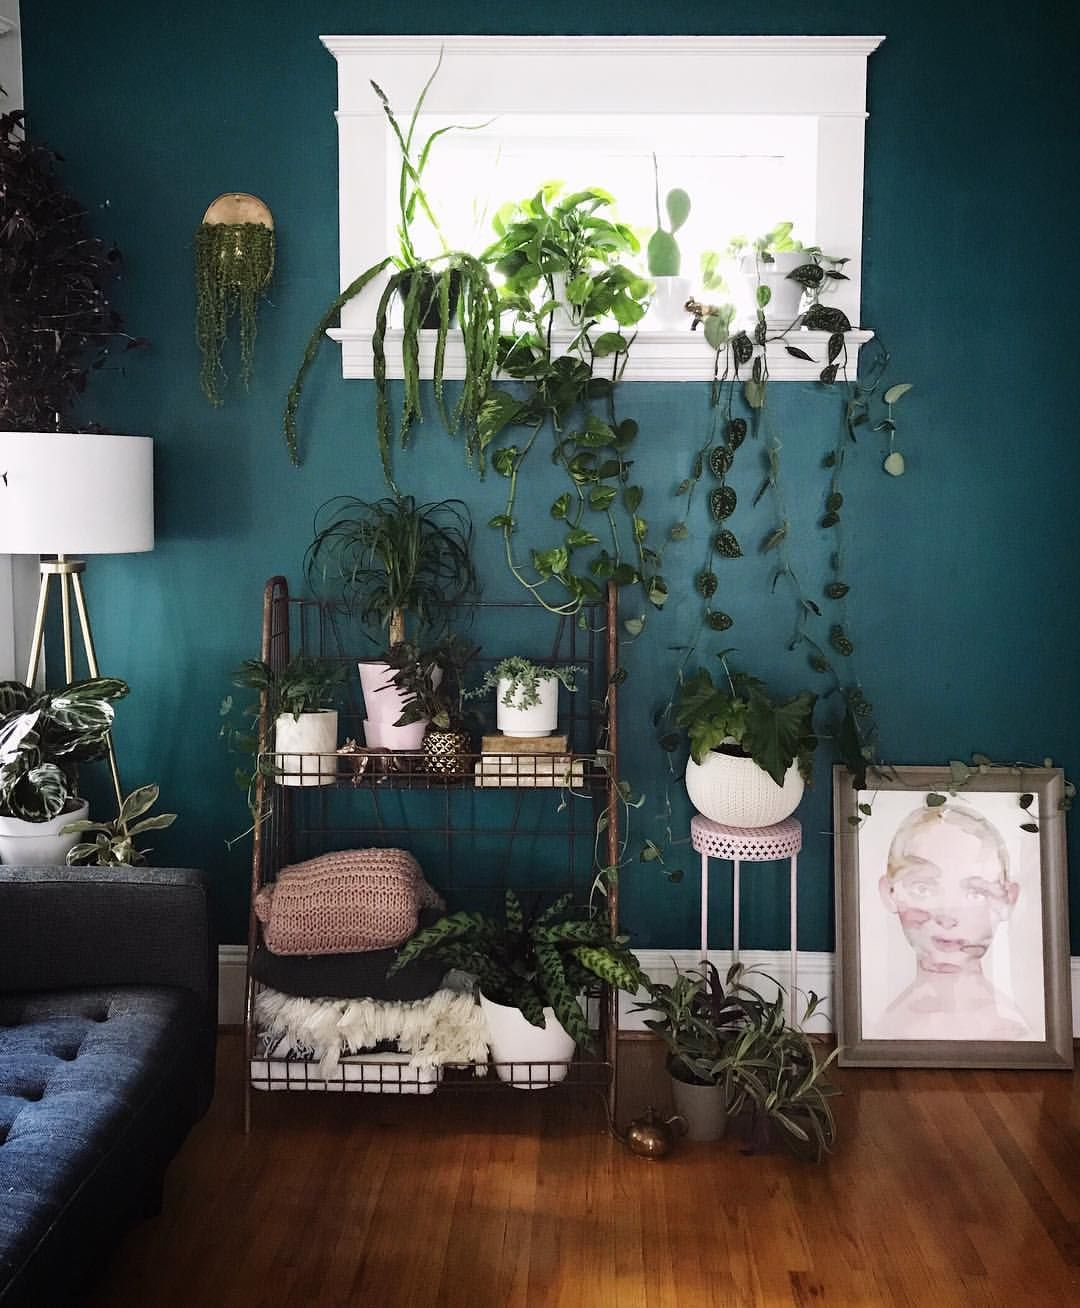 Paint color is Behr verdant forest. I want this to be my